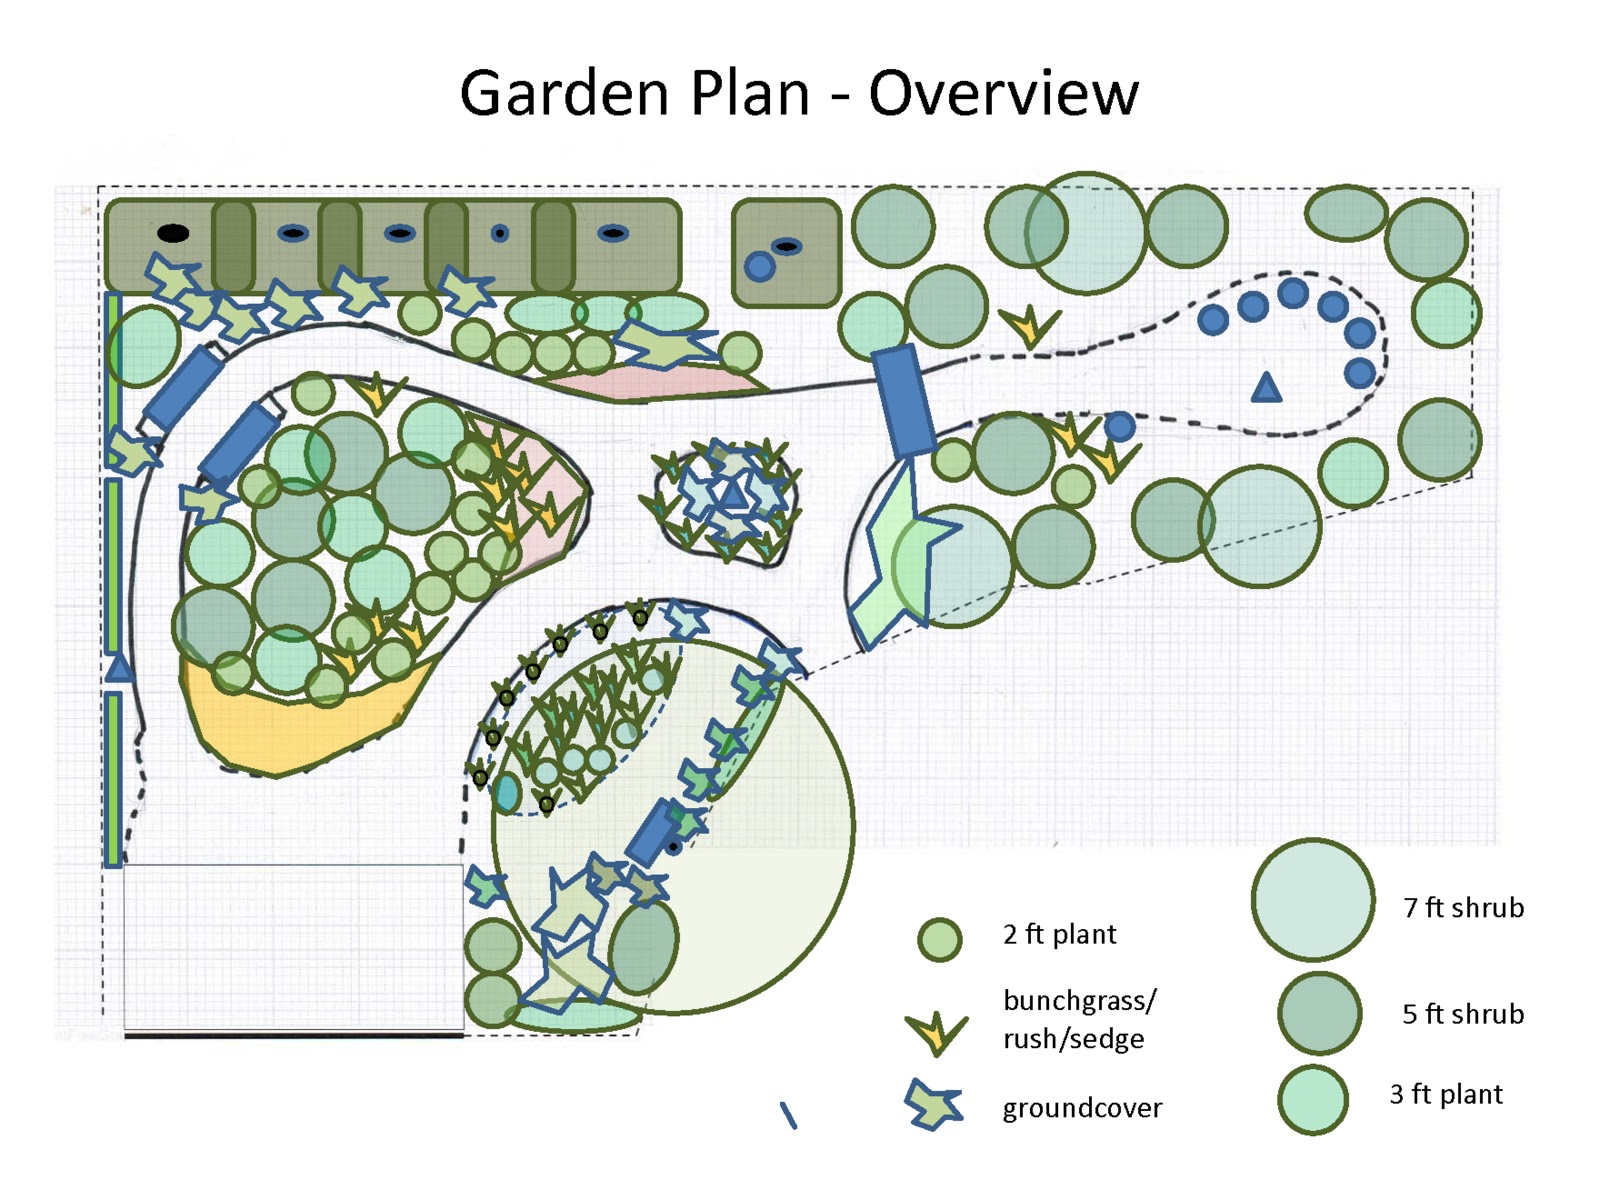 Butterfly garden plans zone 7 shade plants perennials for for Garden plot layout ideas